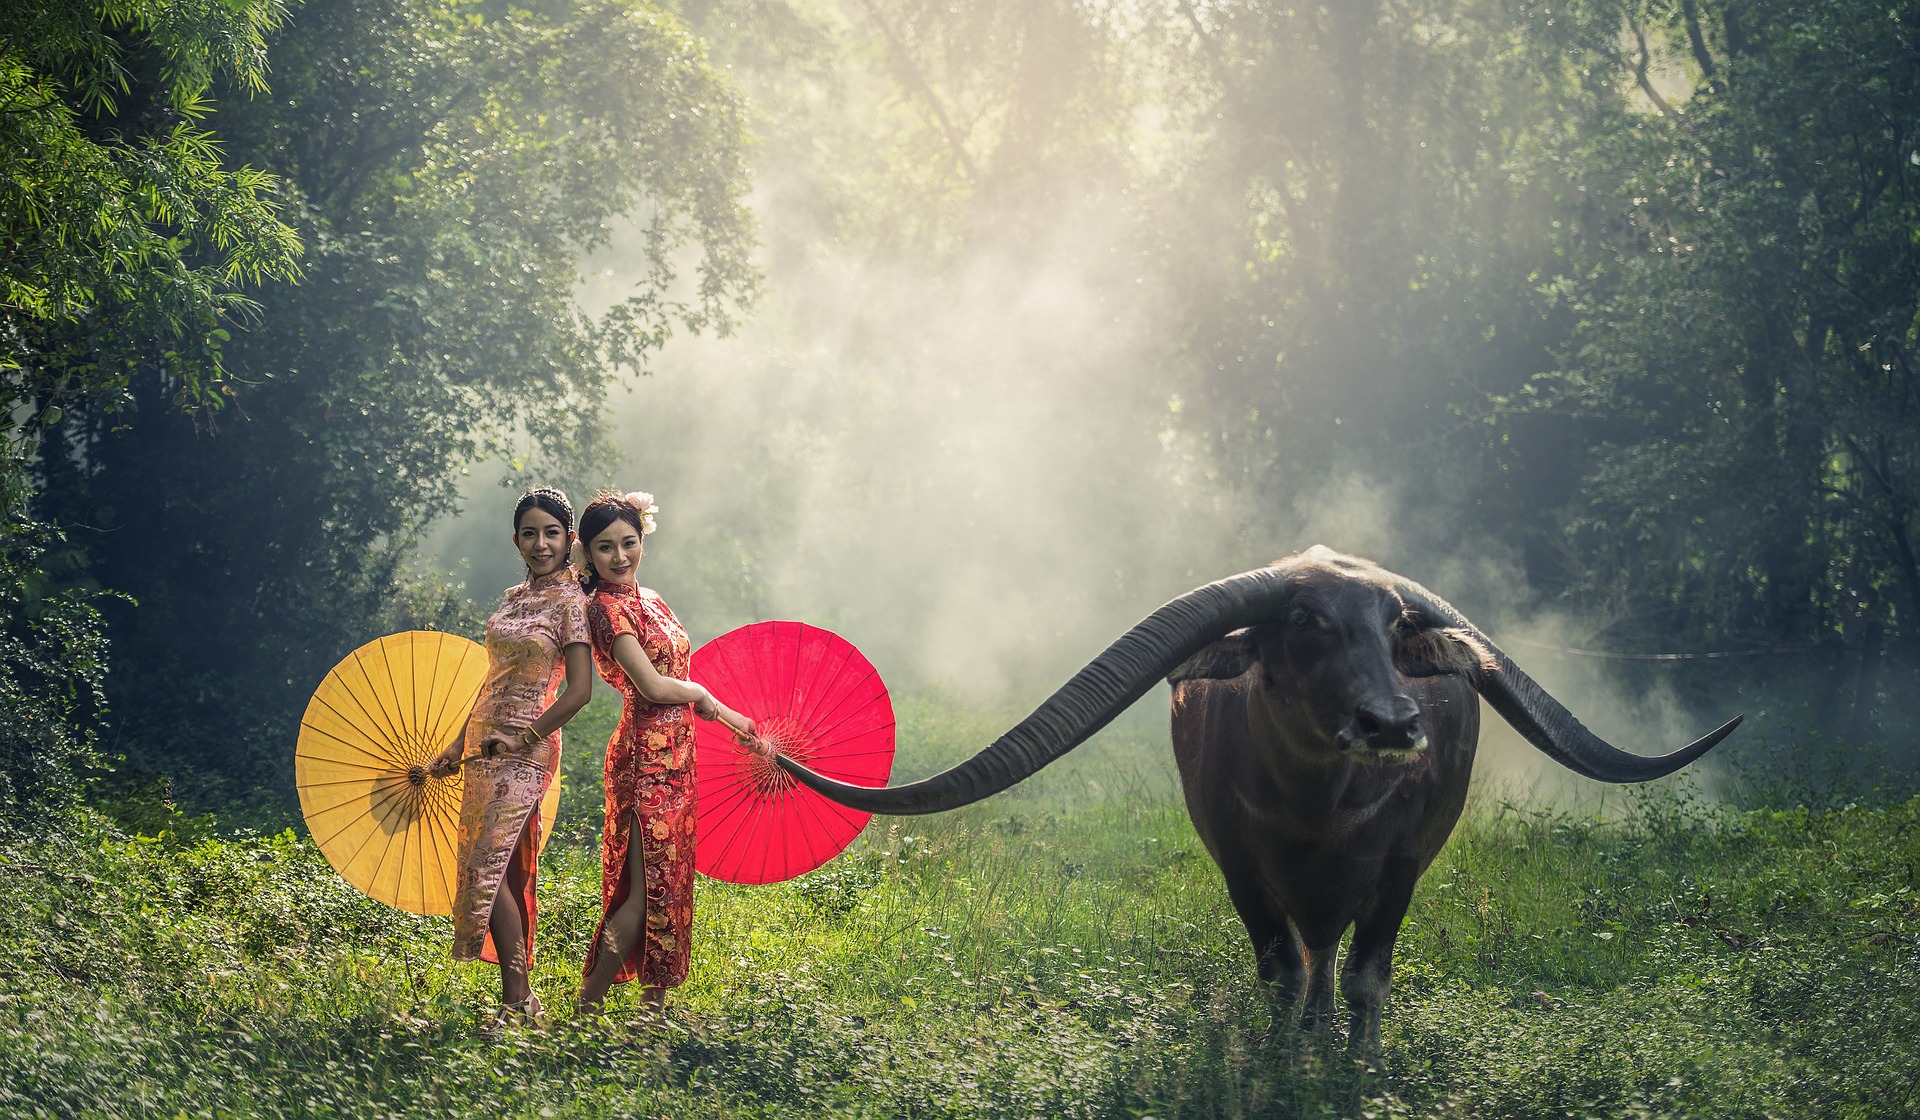 Ladies with the Cow, Activity, Animal, Buffalo, Cow, HQ Photo